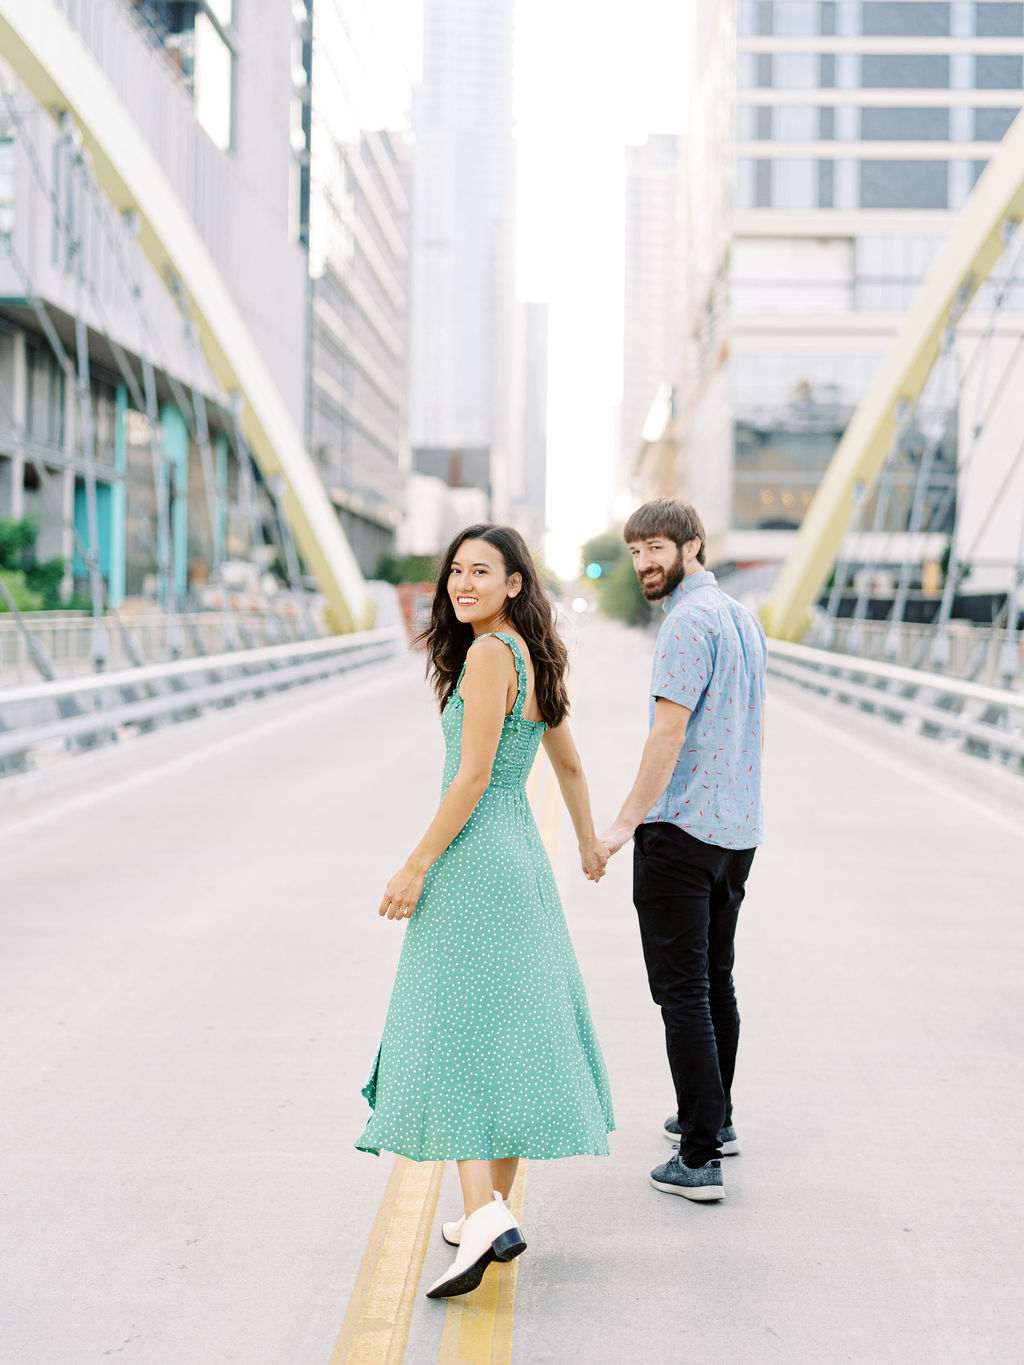 Austin-Intimate-Wedding-Elopement-Photograper-Film-Downtown-Engagement-Session-Home-13.jpg